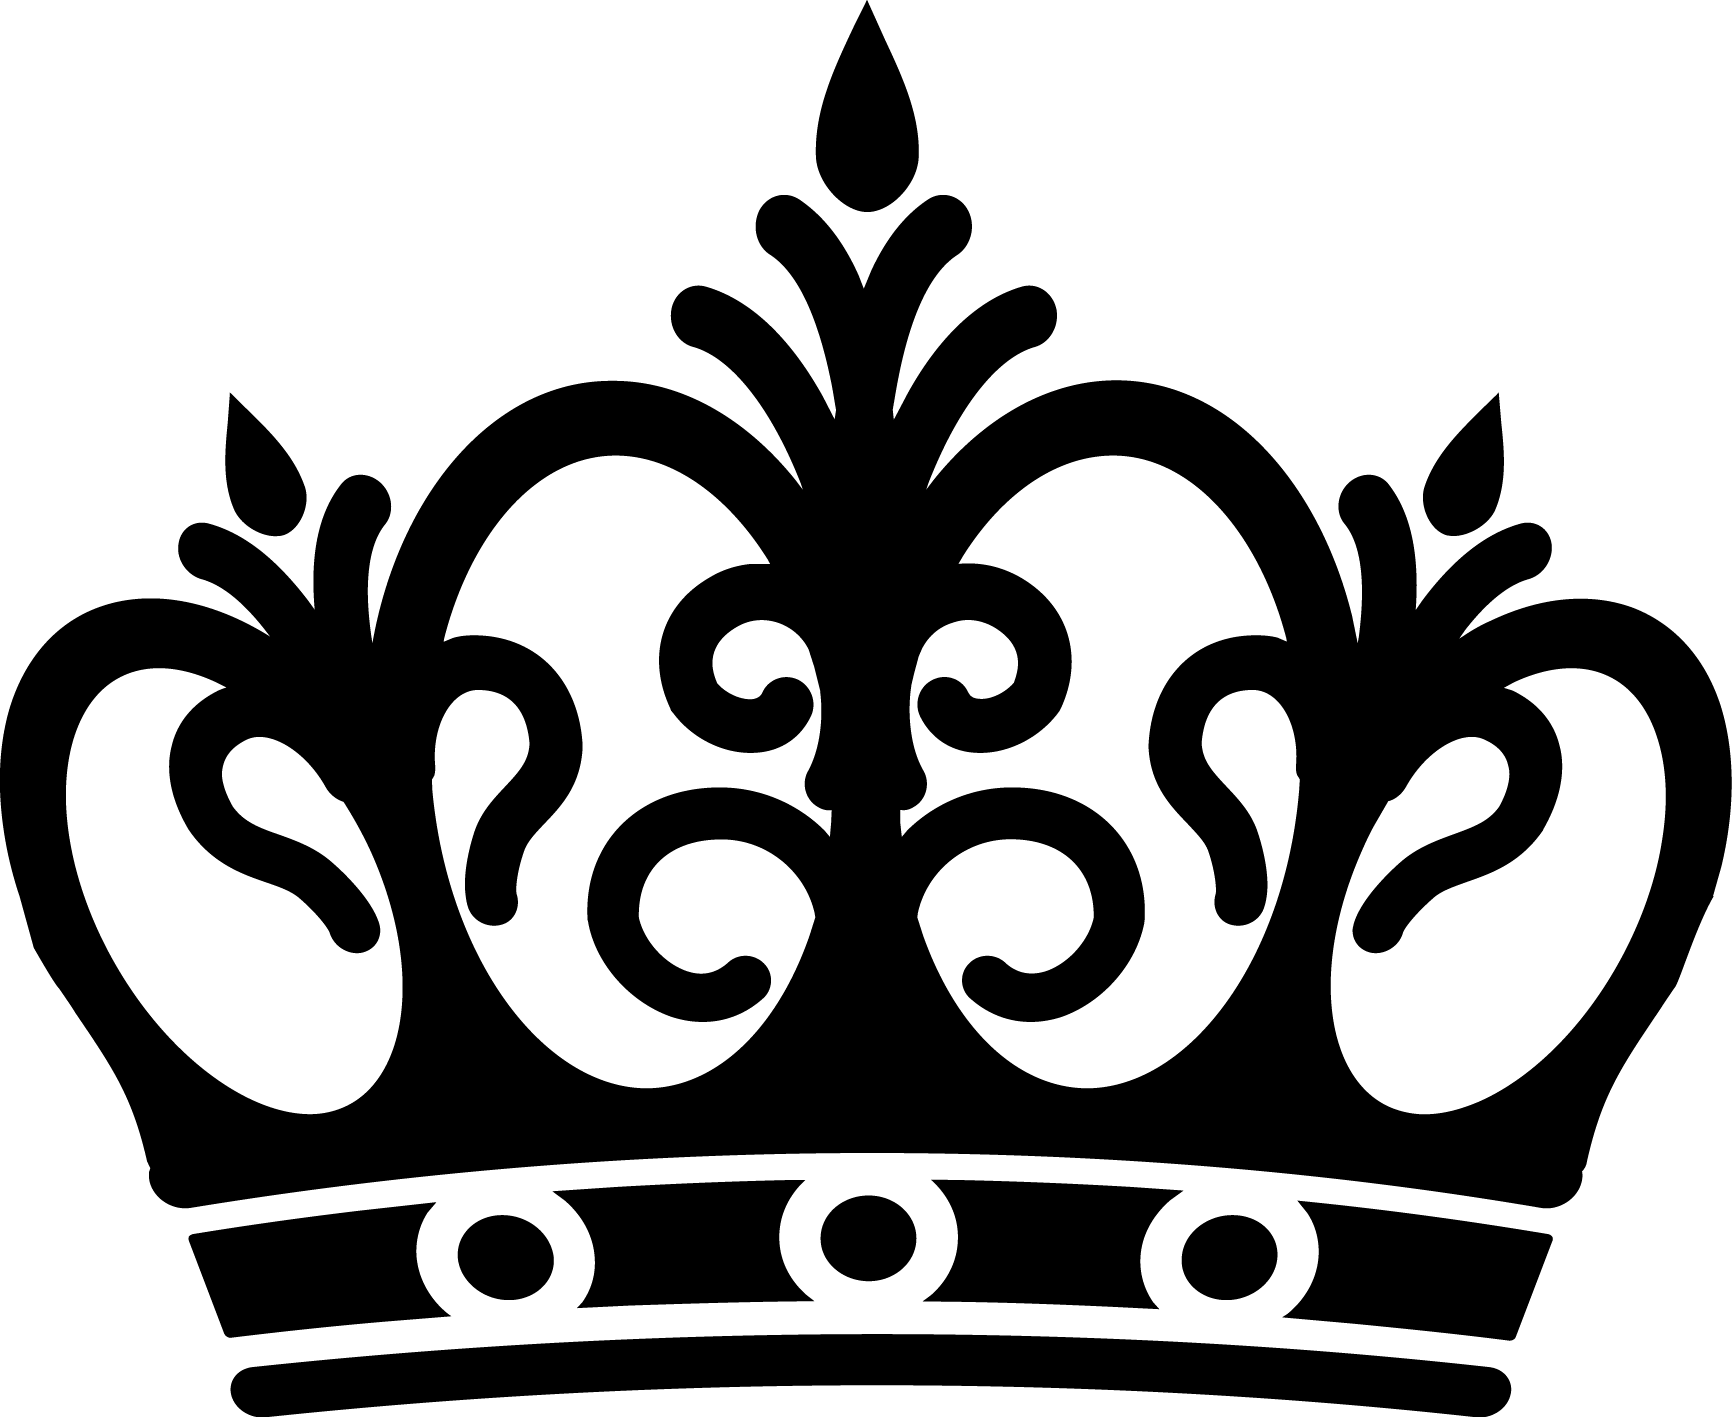 Crown clipart elegant